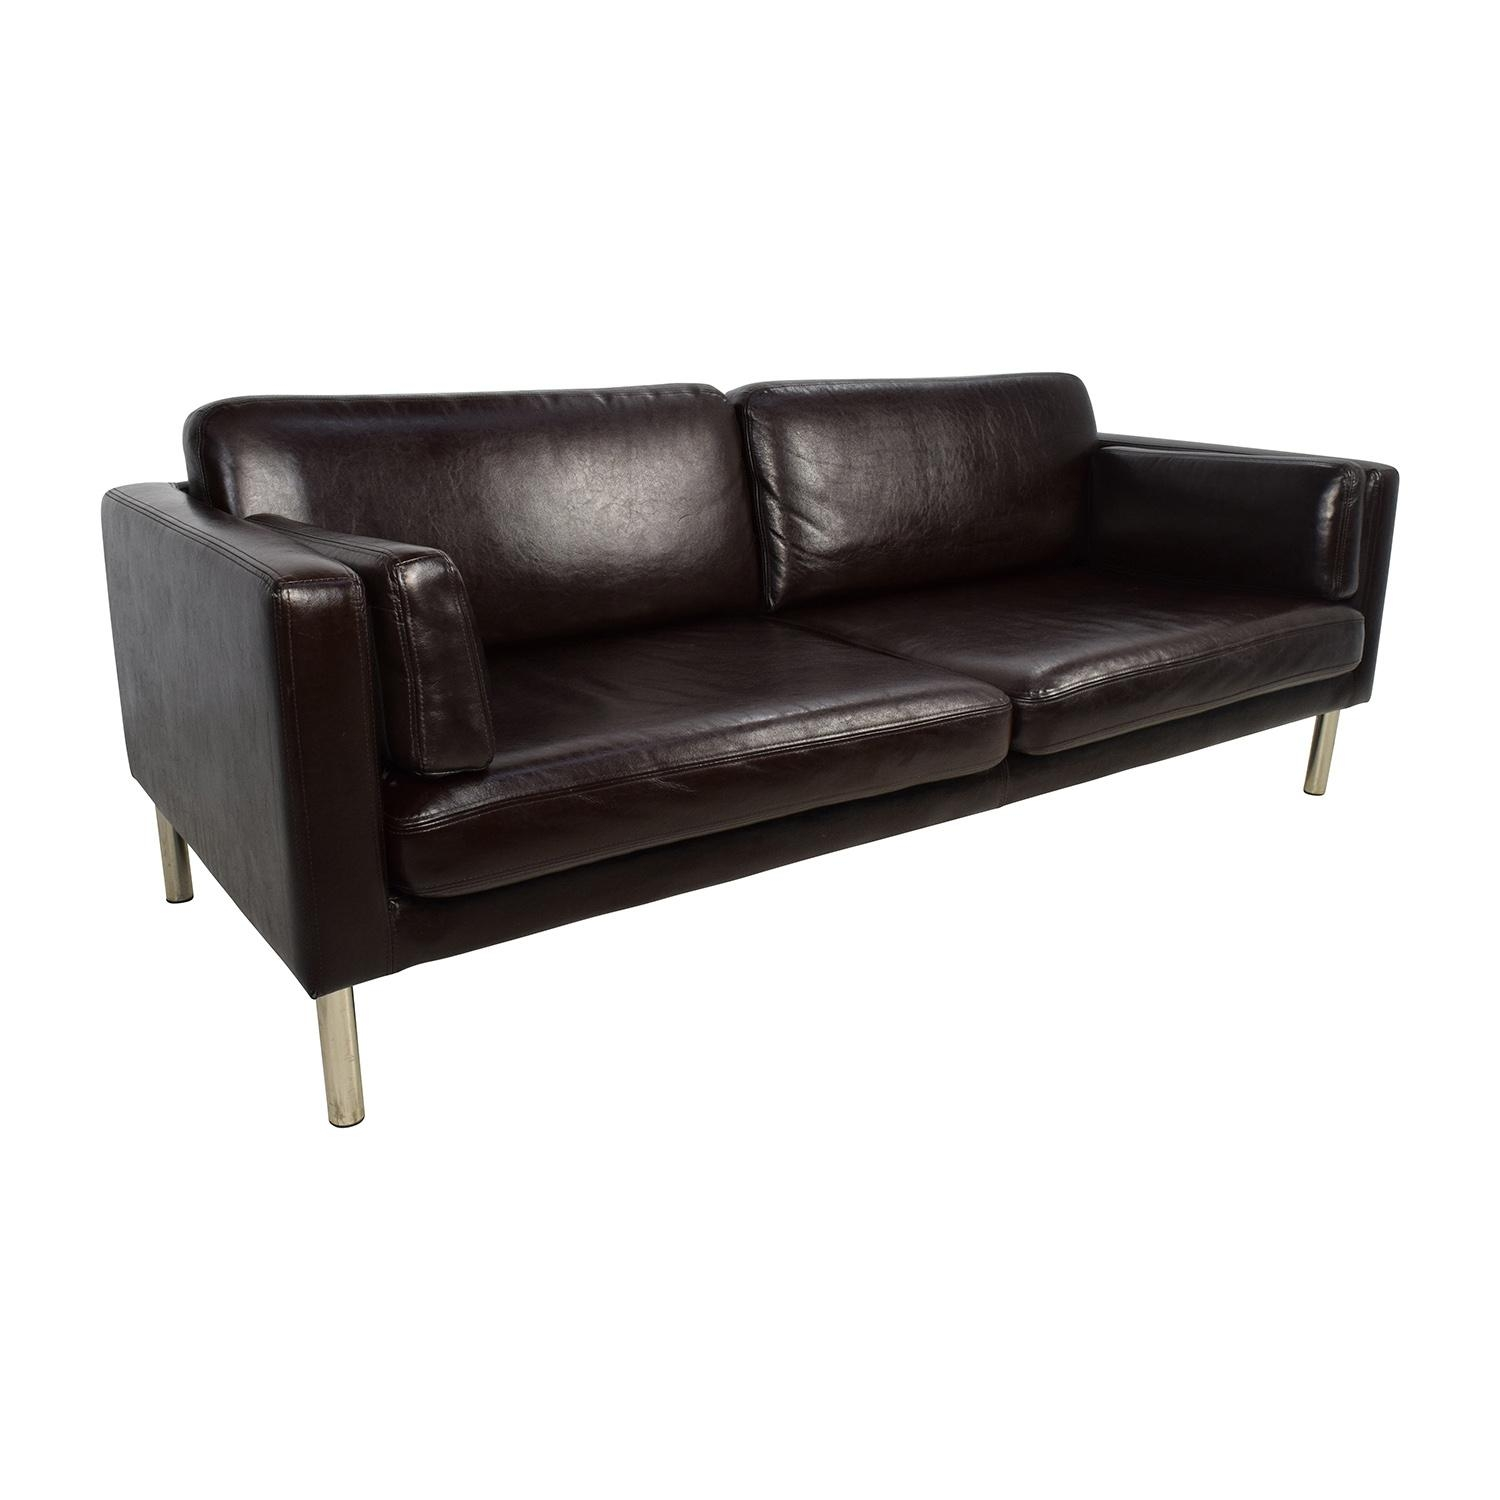 76% Off – Brown Leather Sofa With Chrome Legs / Sofas Pertaining To Sofas With Chrome Legs (Image 3 of 20)